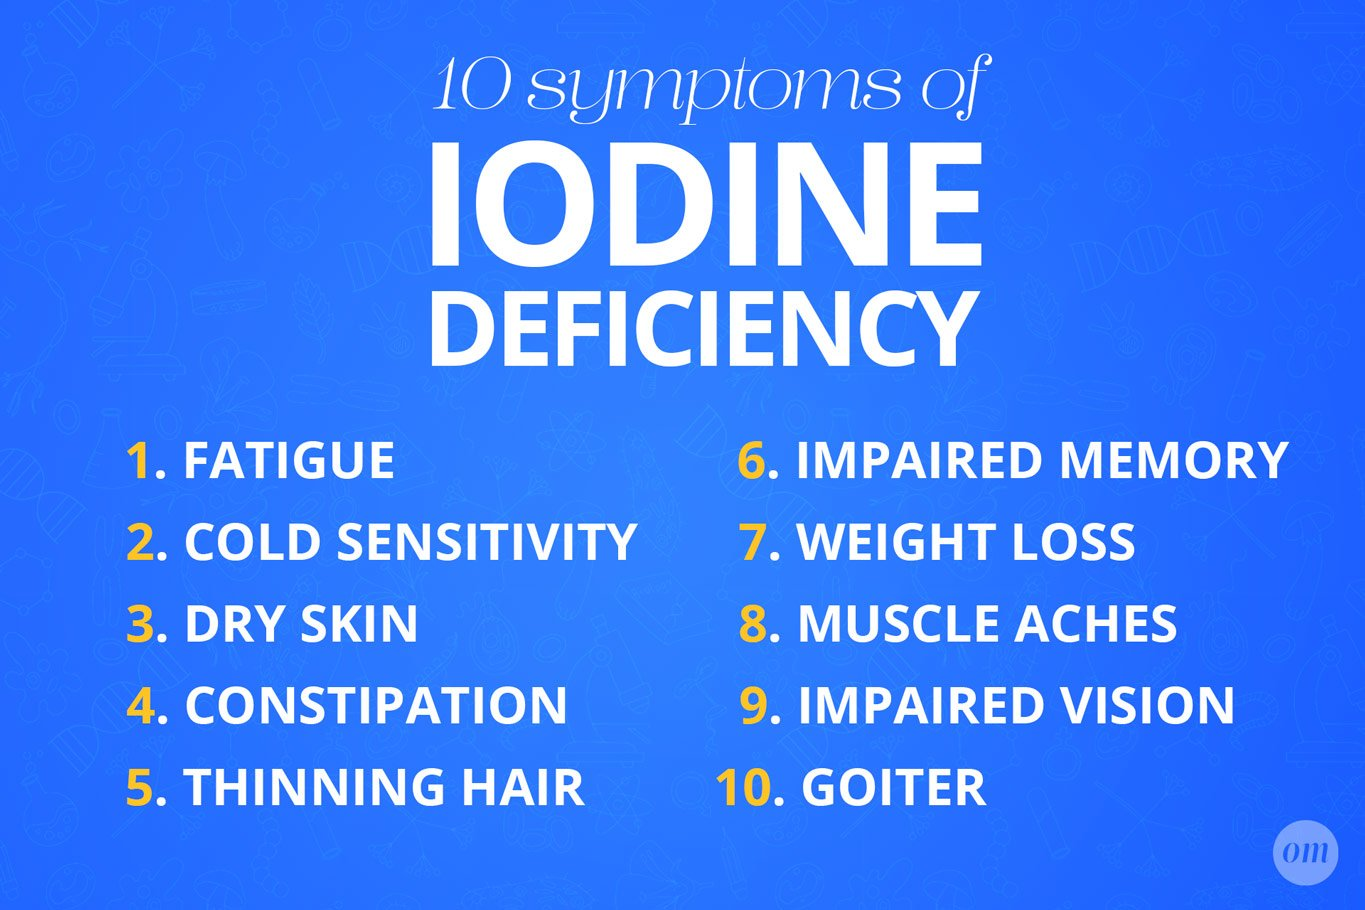 iodine deficiency symptoms infographic